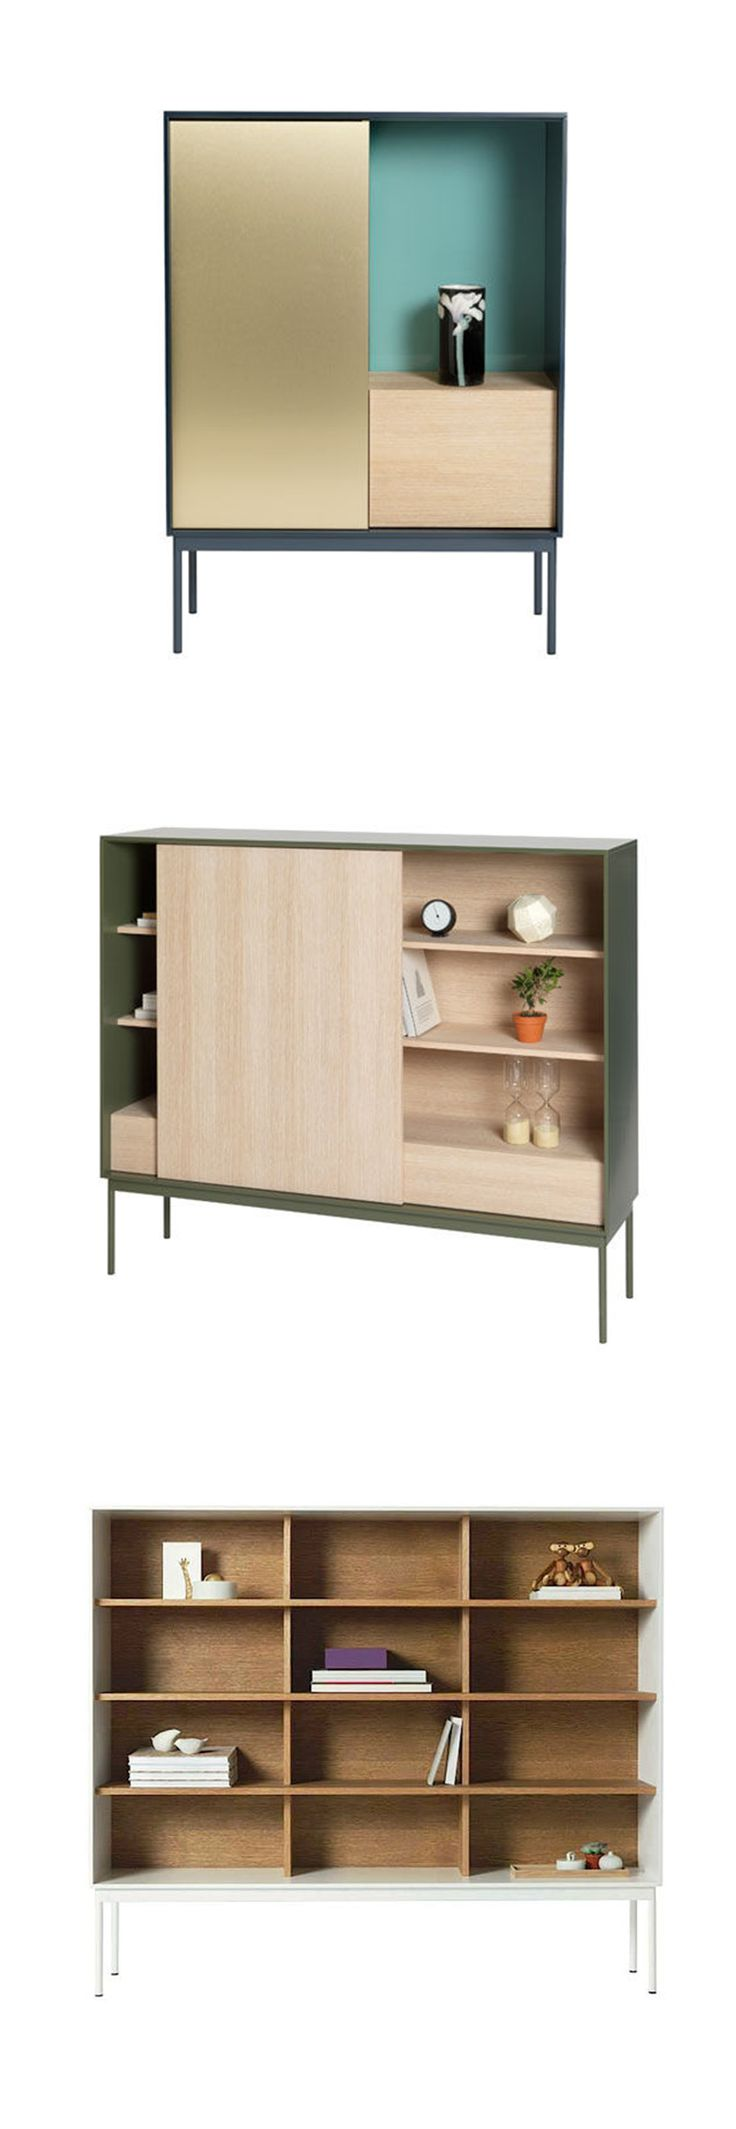 Each Besson Cabinet By Asplund Is Unique And Tailored To Your Storage Needs.  Click Through